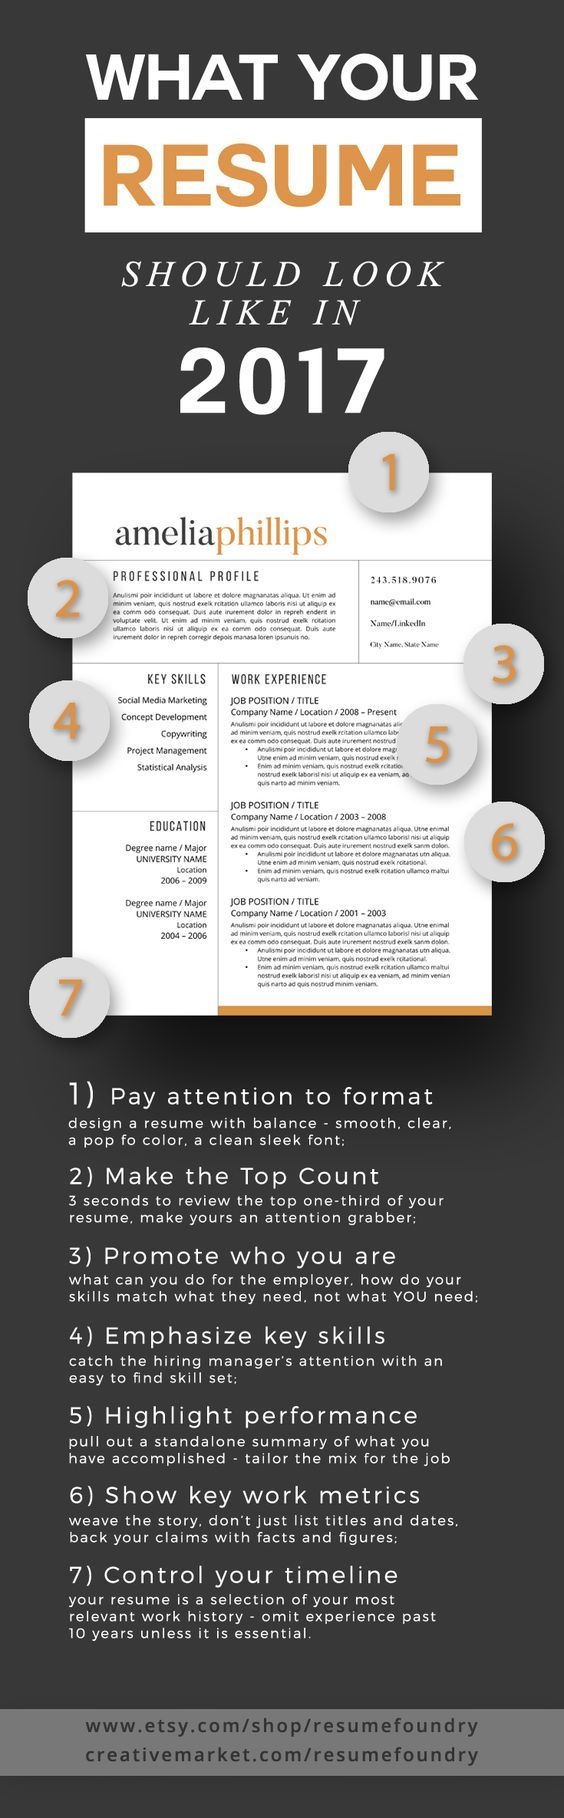 Magnificent 1 Page Resume Format Thick 1 Week Schedule Template Clean 10 Tips For A Great Resume 100 Chart Template Youthful 100 Dollar Bill Template Purple100 Resume Words 25  Best Ideas About Resume Examples On Pinterest | Resume, Resume ..